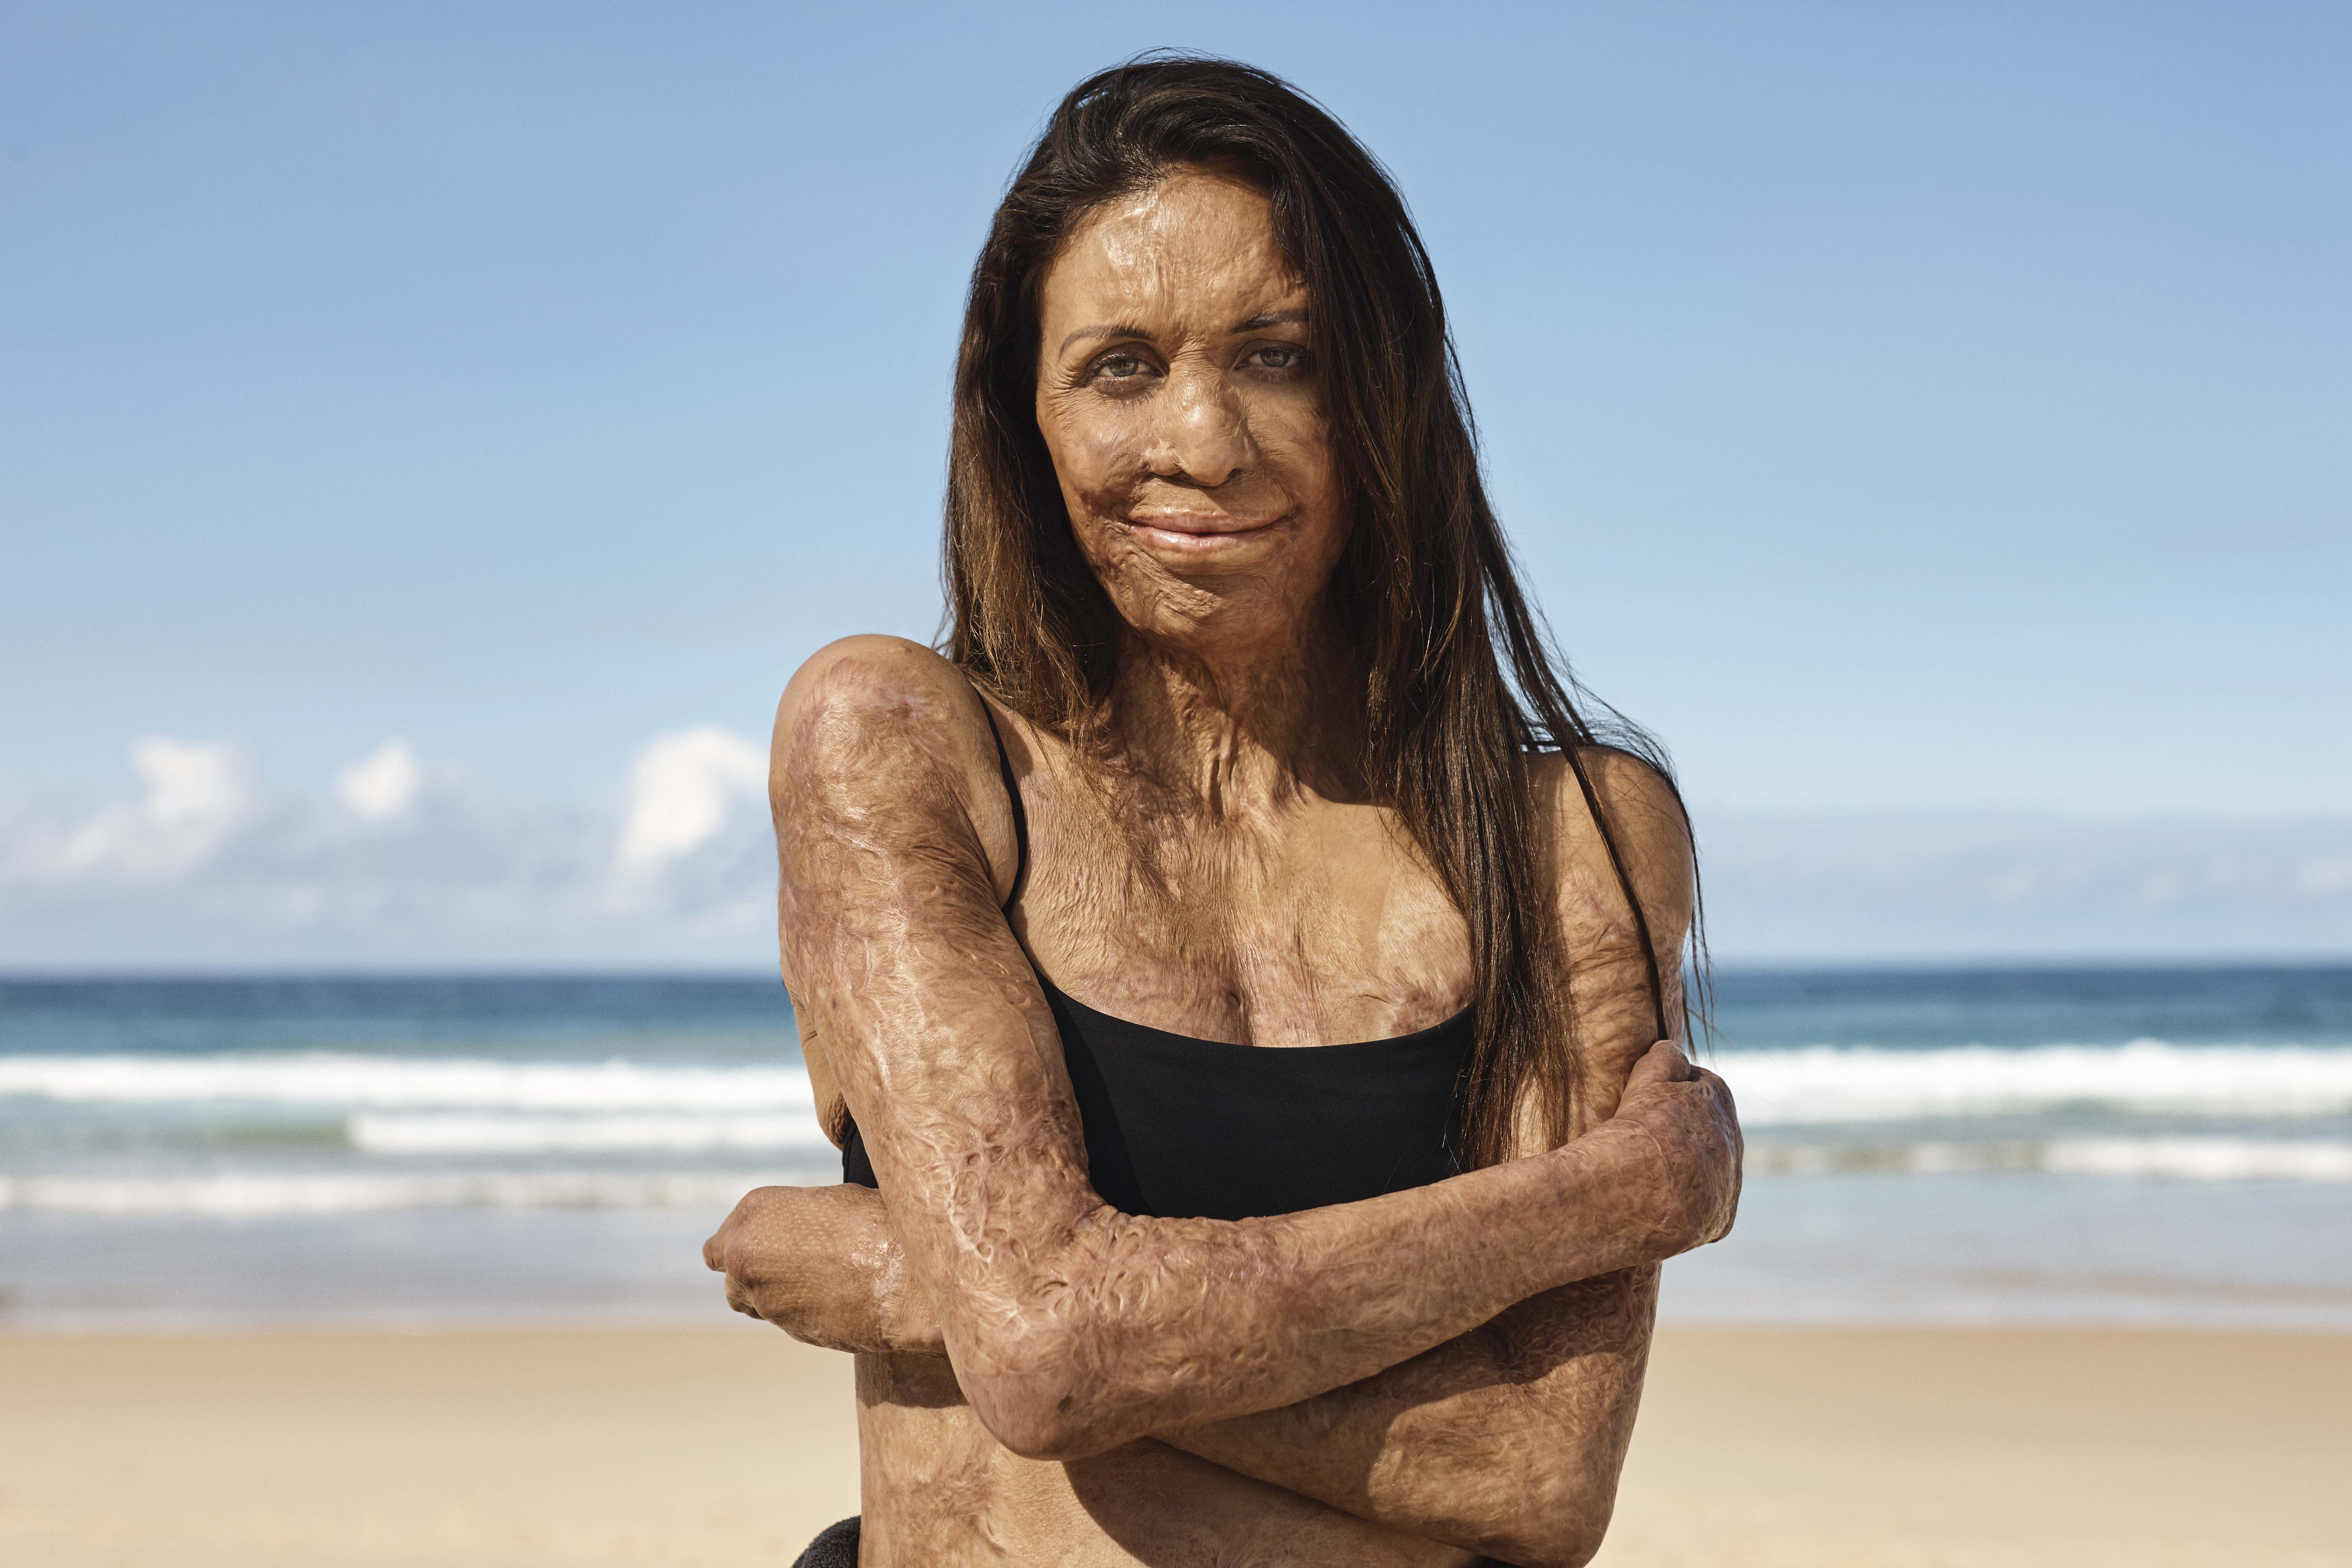 Turia Pitt champions Avène's 'Strong Sensitive' positioning in first campaign via SLIK